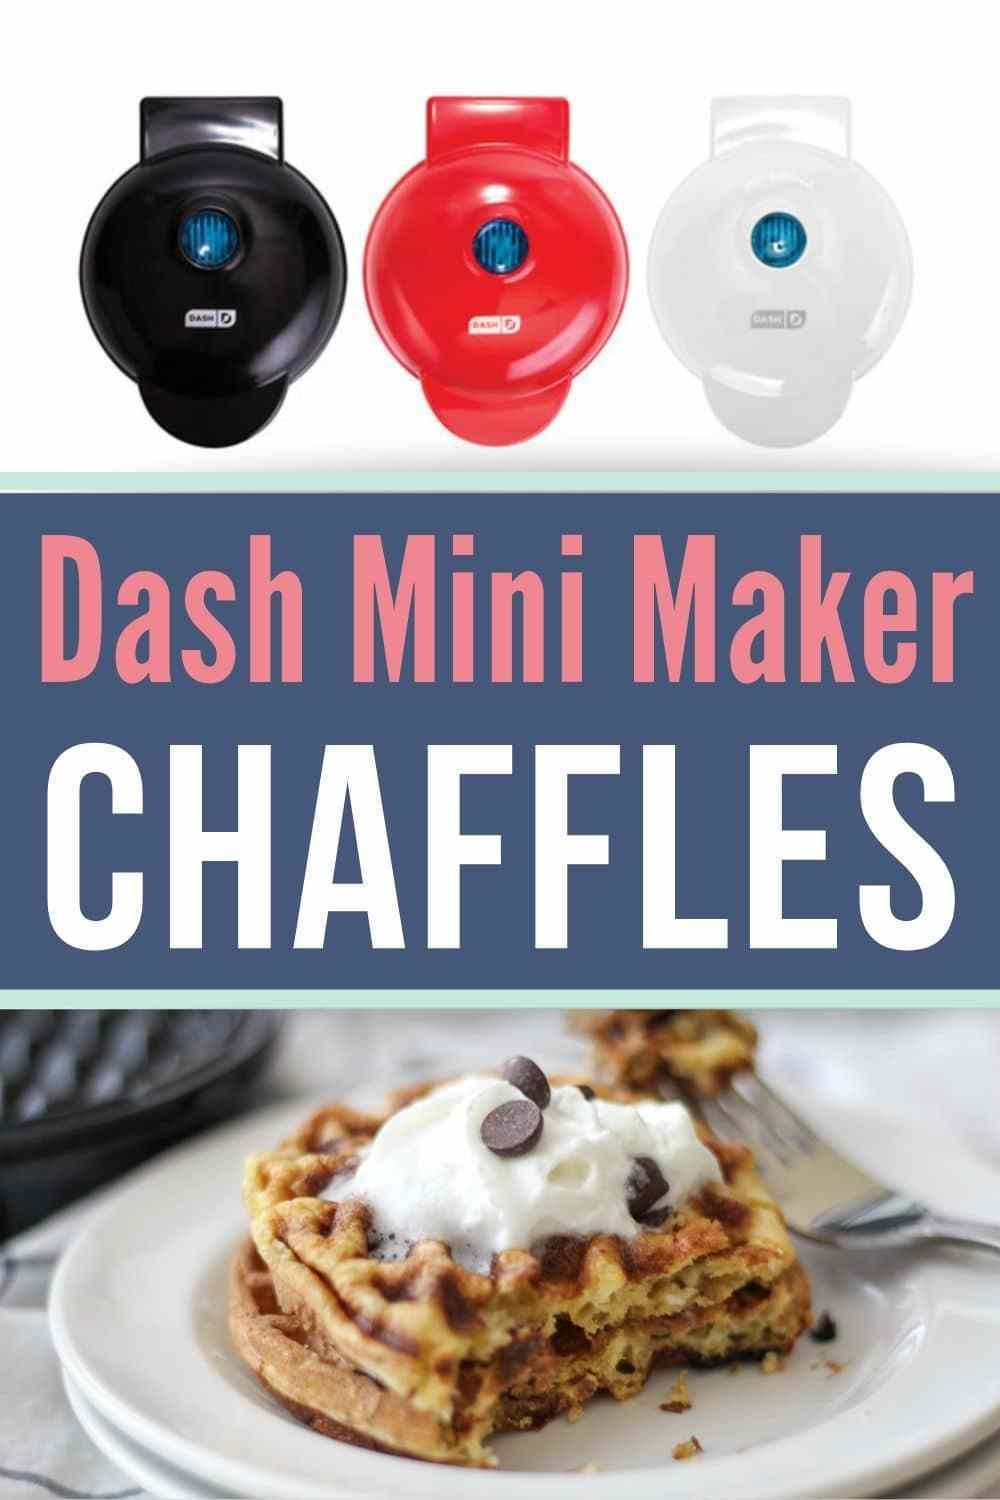 Dash Mini Waffle Maker For Chaffles Where To Buy Waffle Maker Recipes Waffle Recipes Waffles